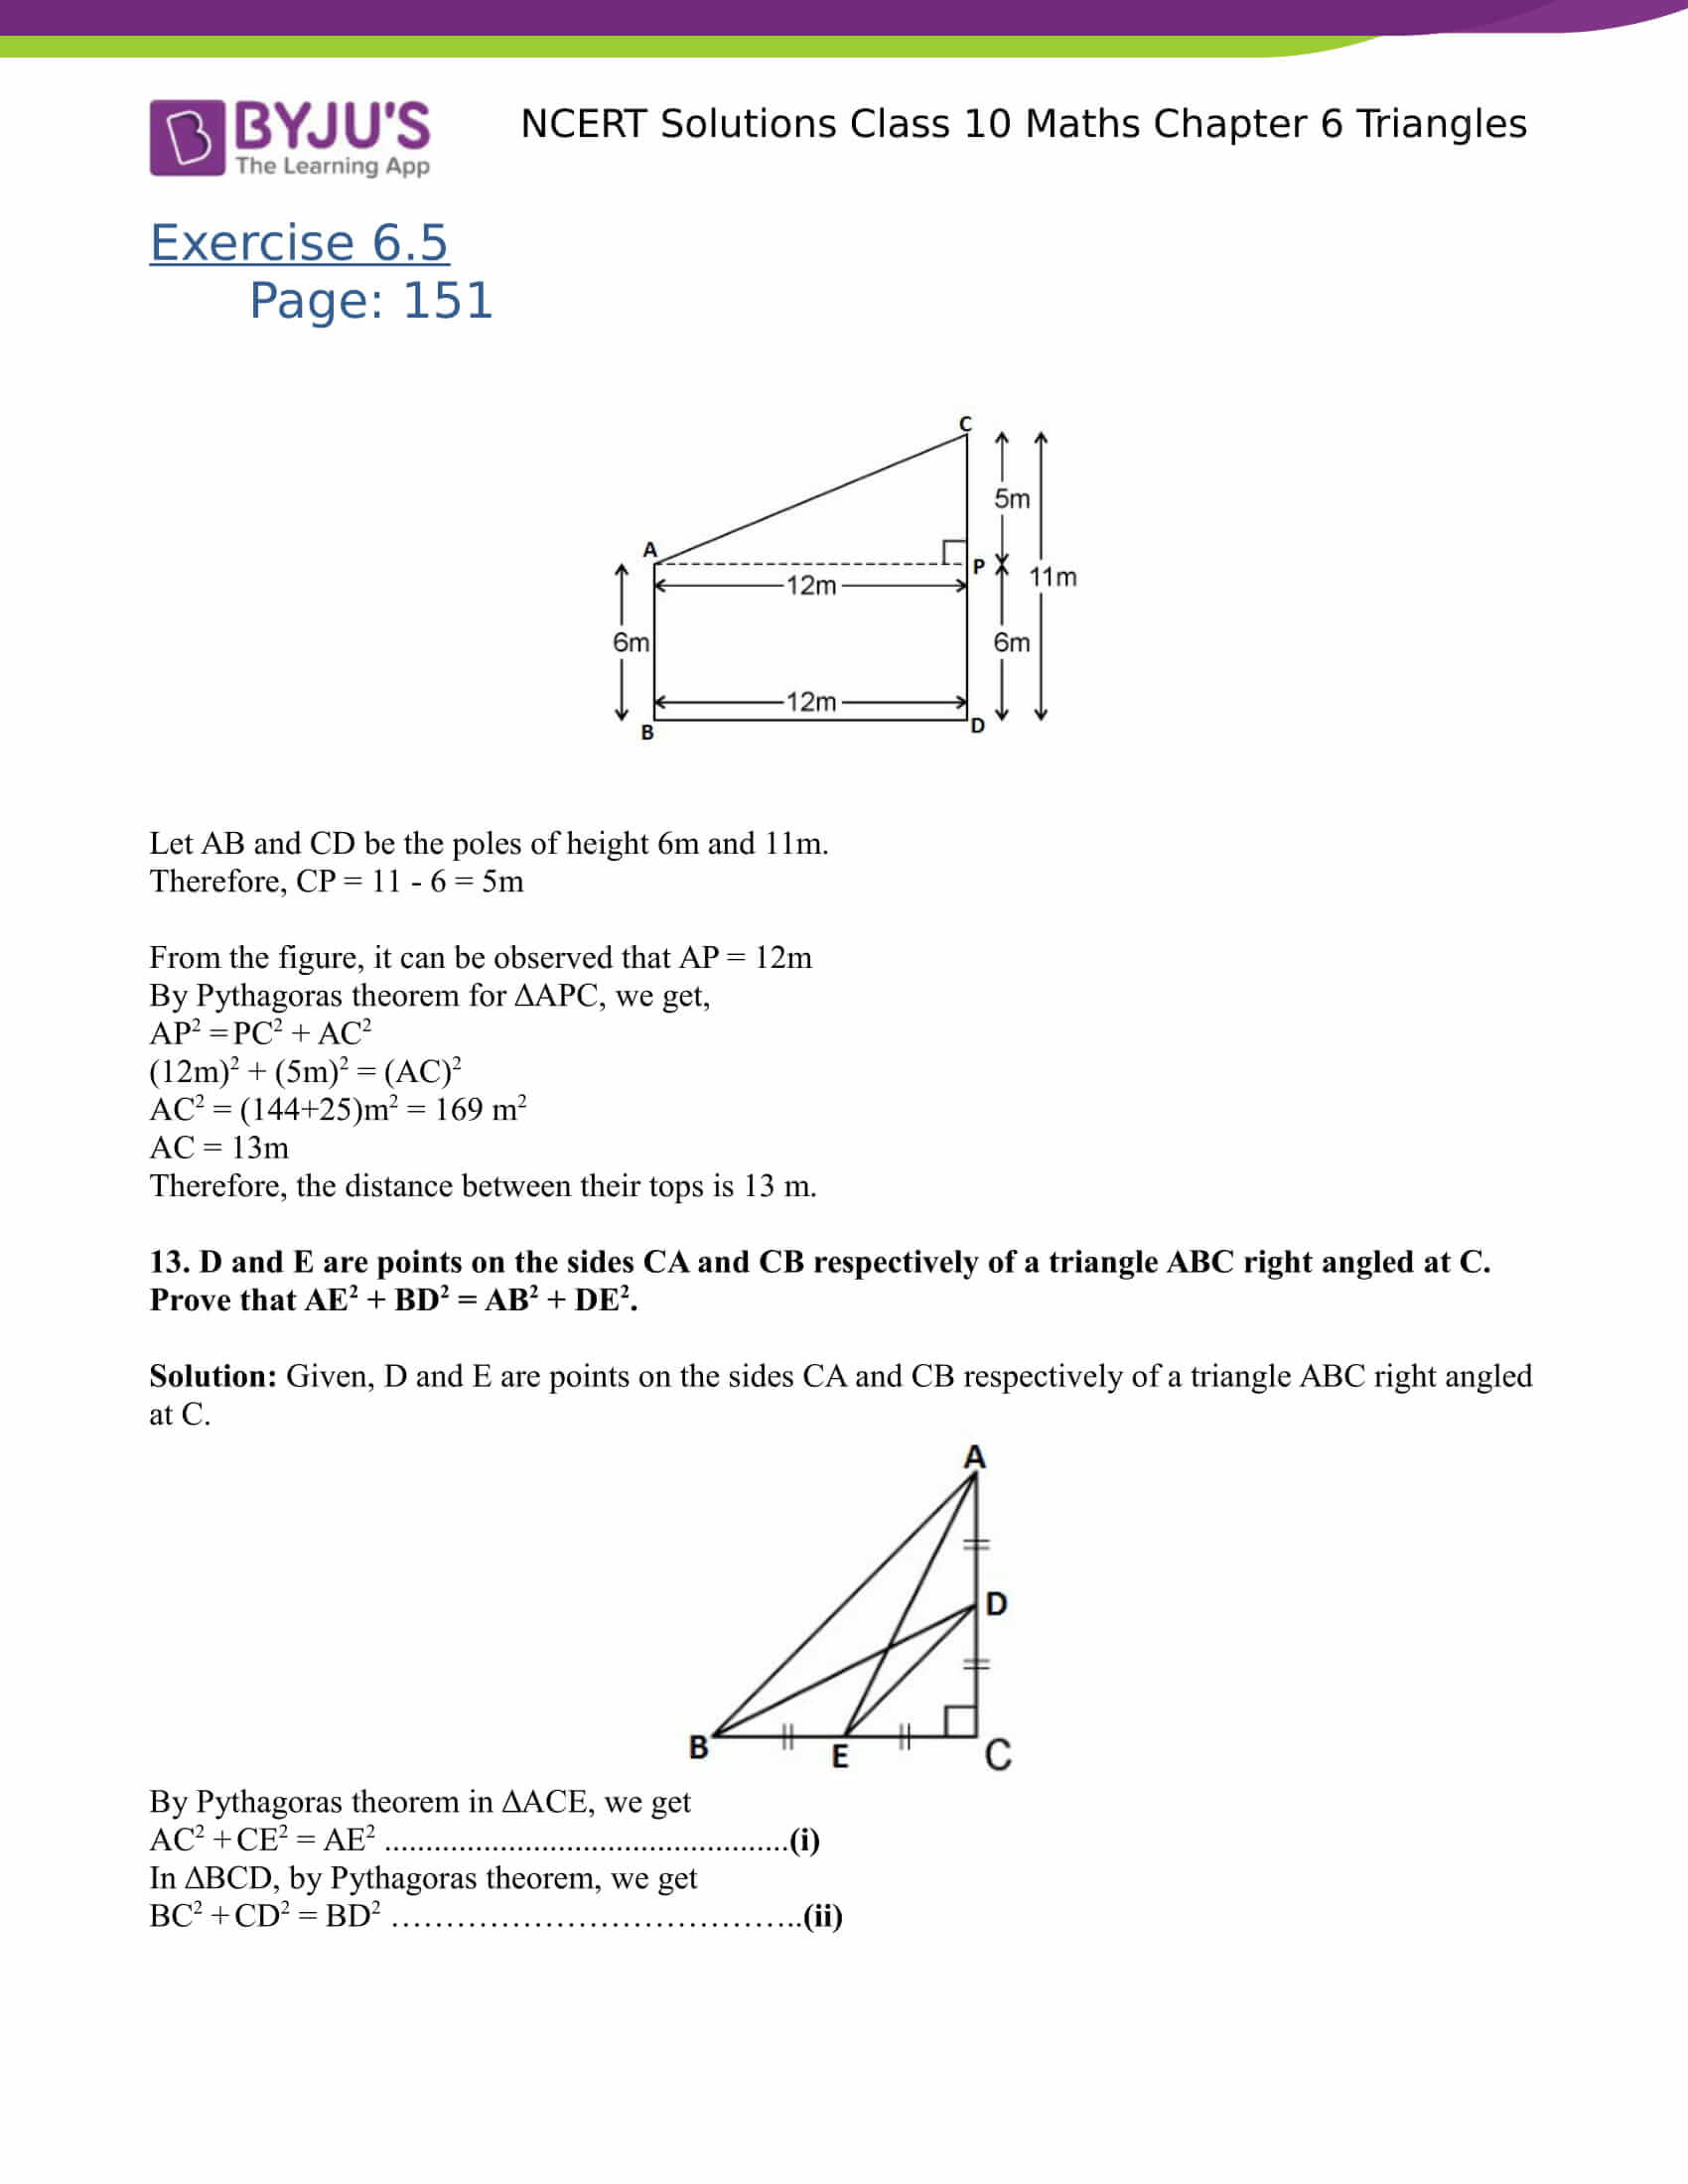 NCERT Solutions for class 10 Maths Chapter 6 Triangles Part 42